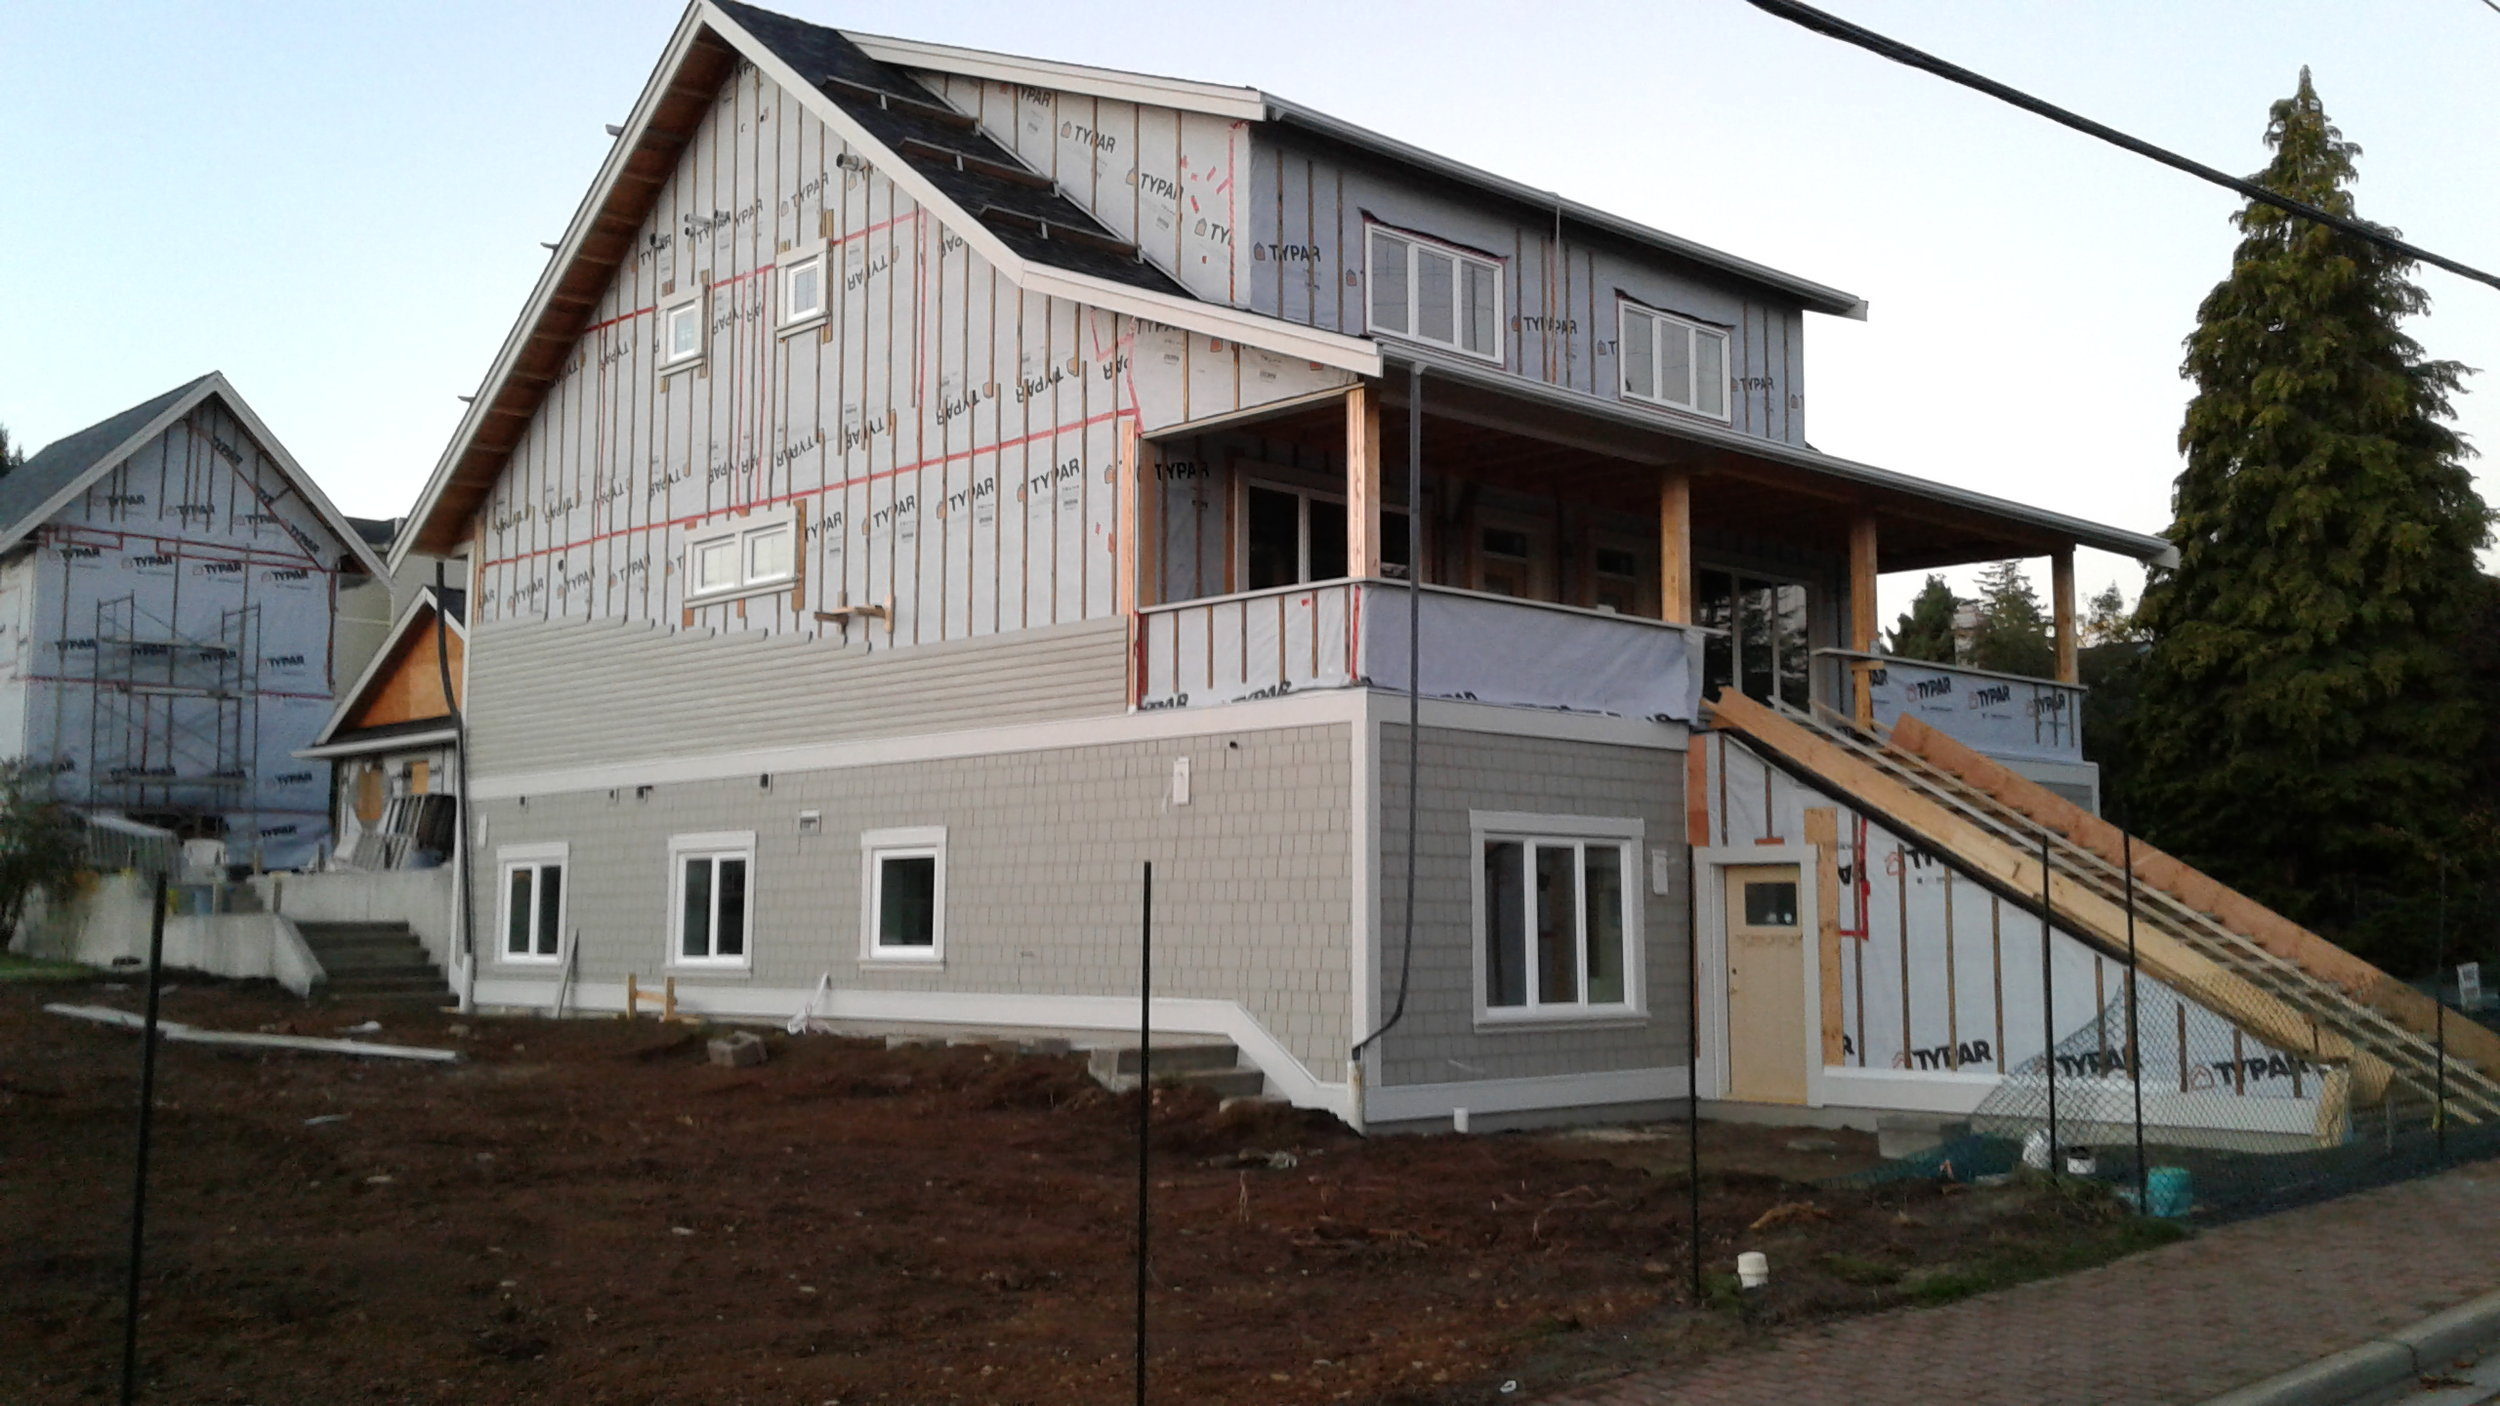 Rosemary Manor now starting to look like the lovely Gal she is. James Hardie Artisan Siding and Shingles are being attached here.